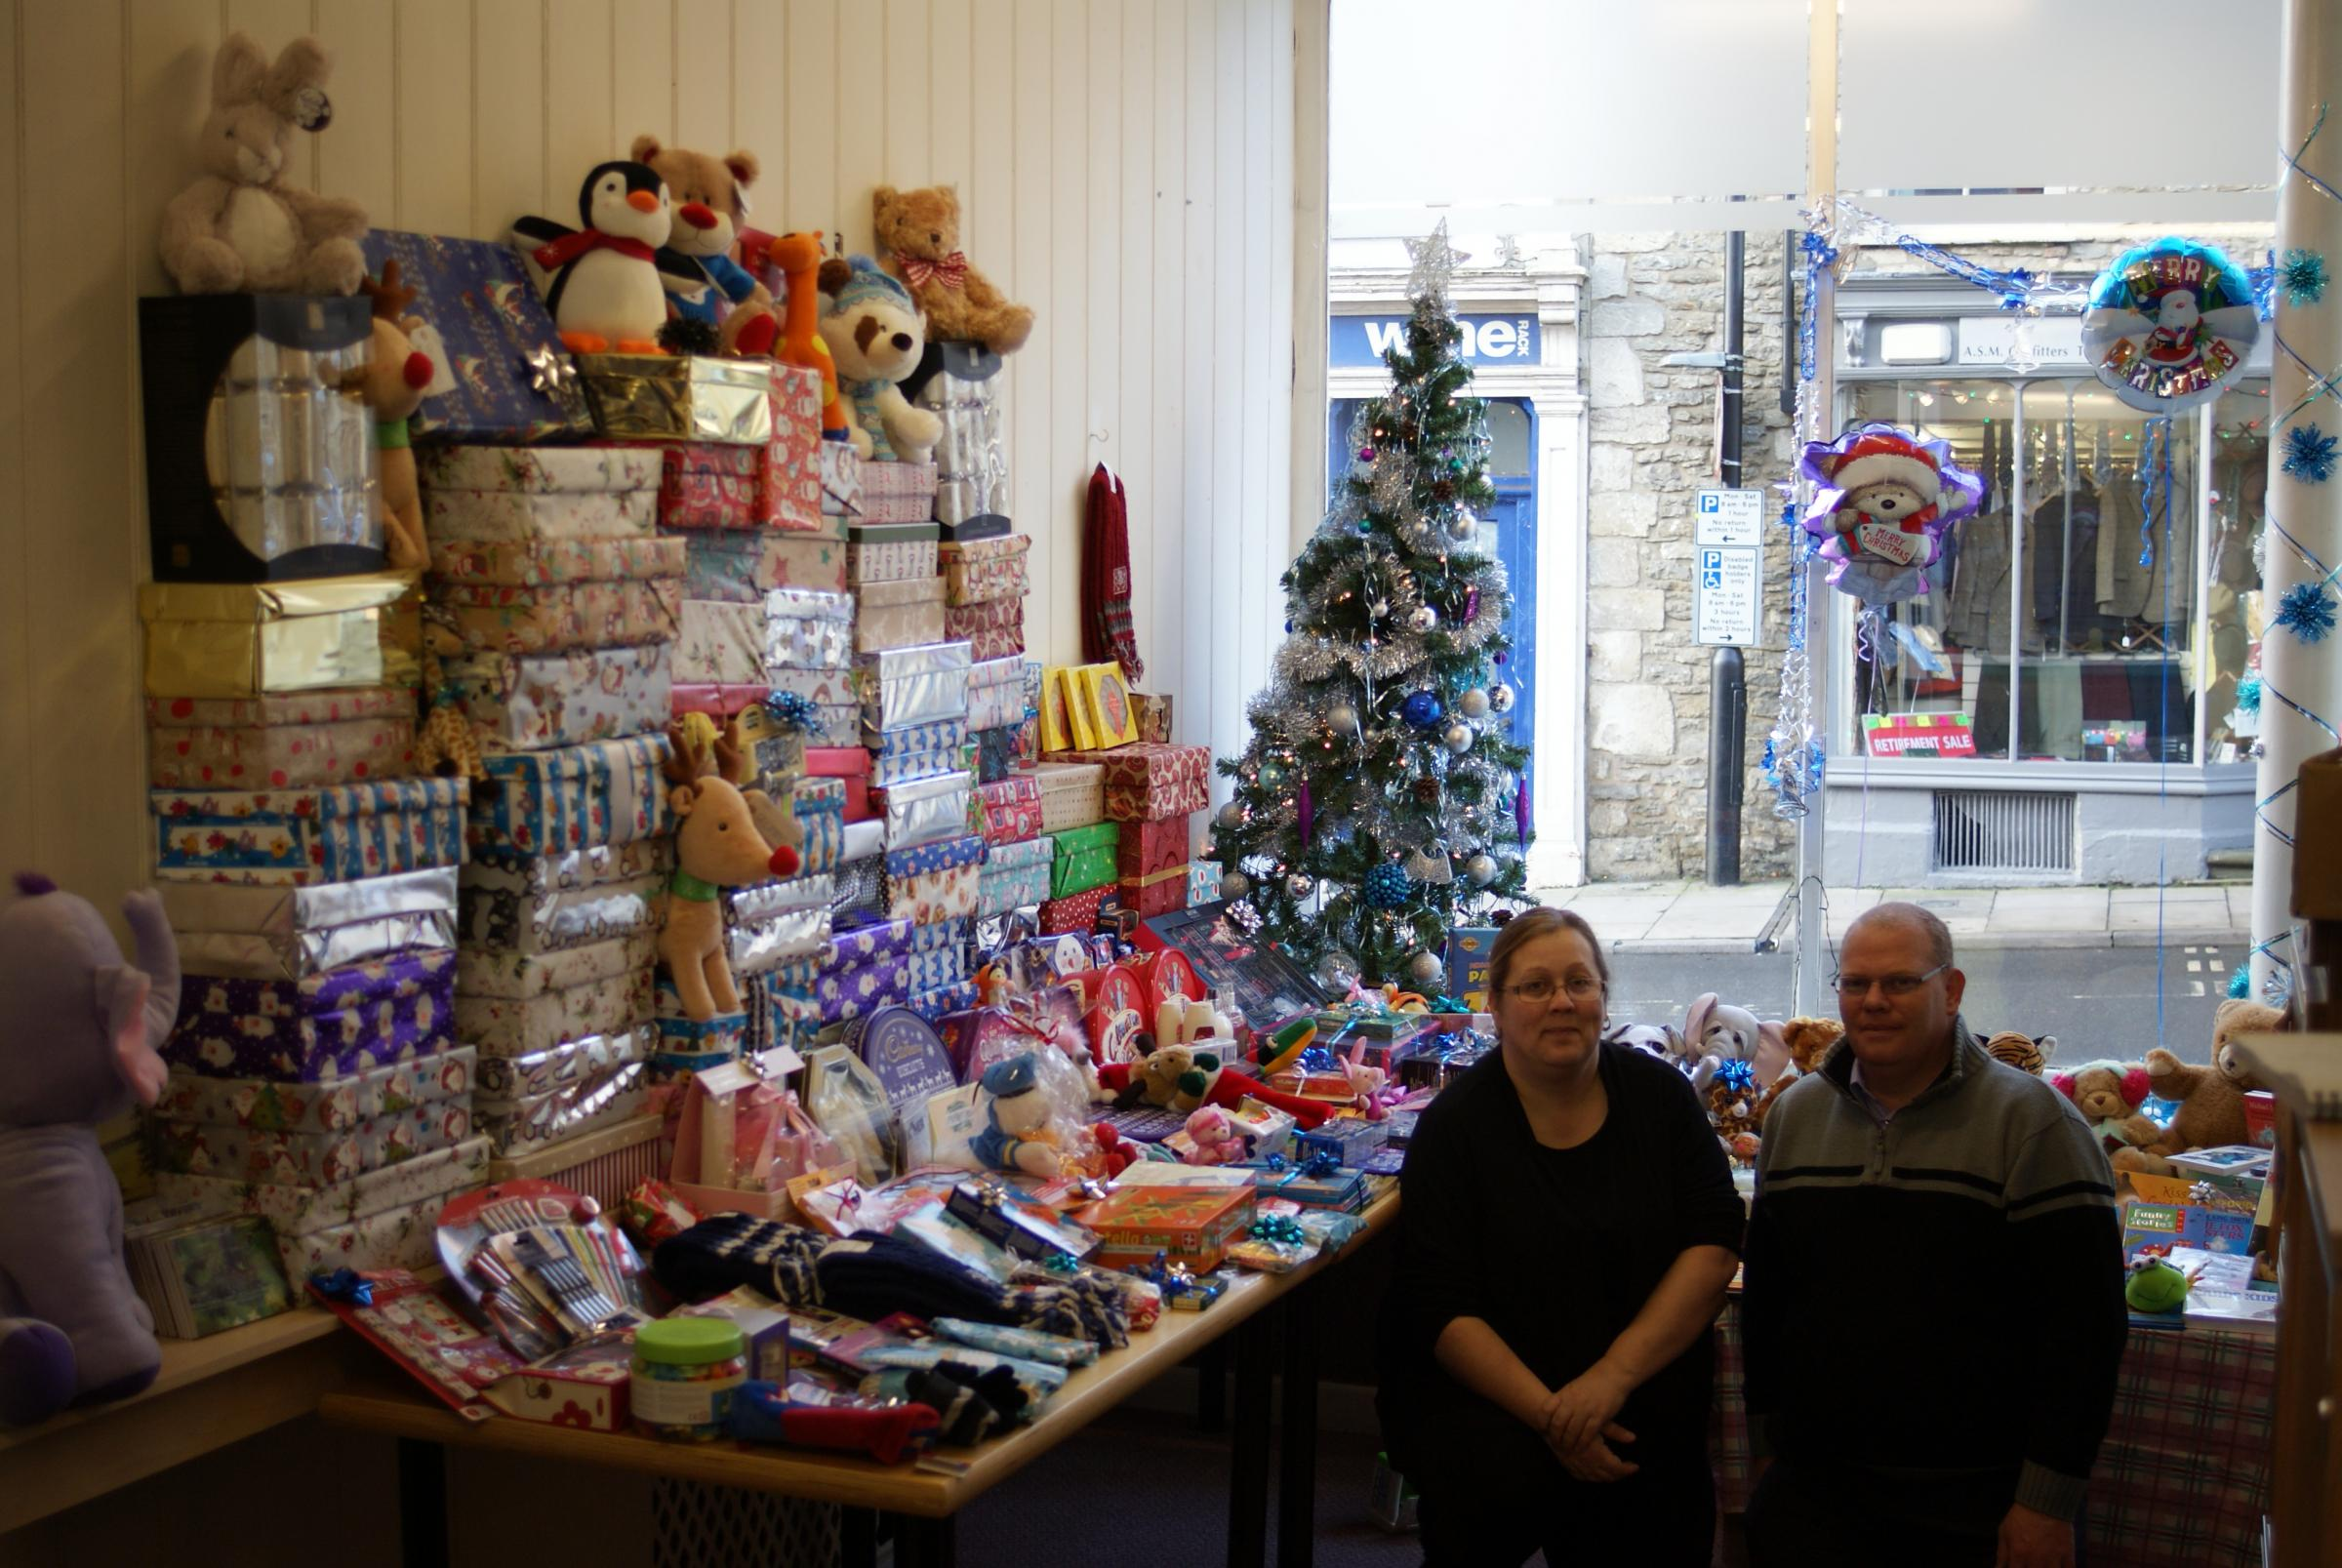 HEALS Malmesbury collects more than 70 Christmas shoeboxes for victims of domestic violence